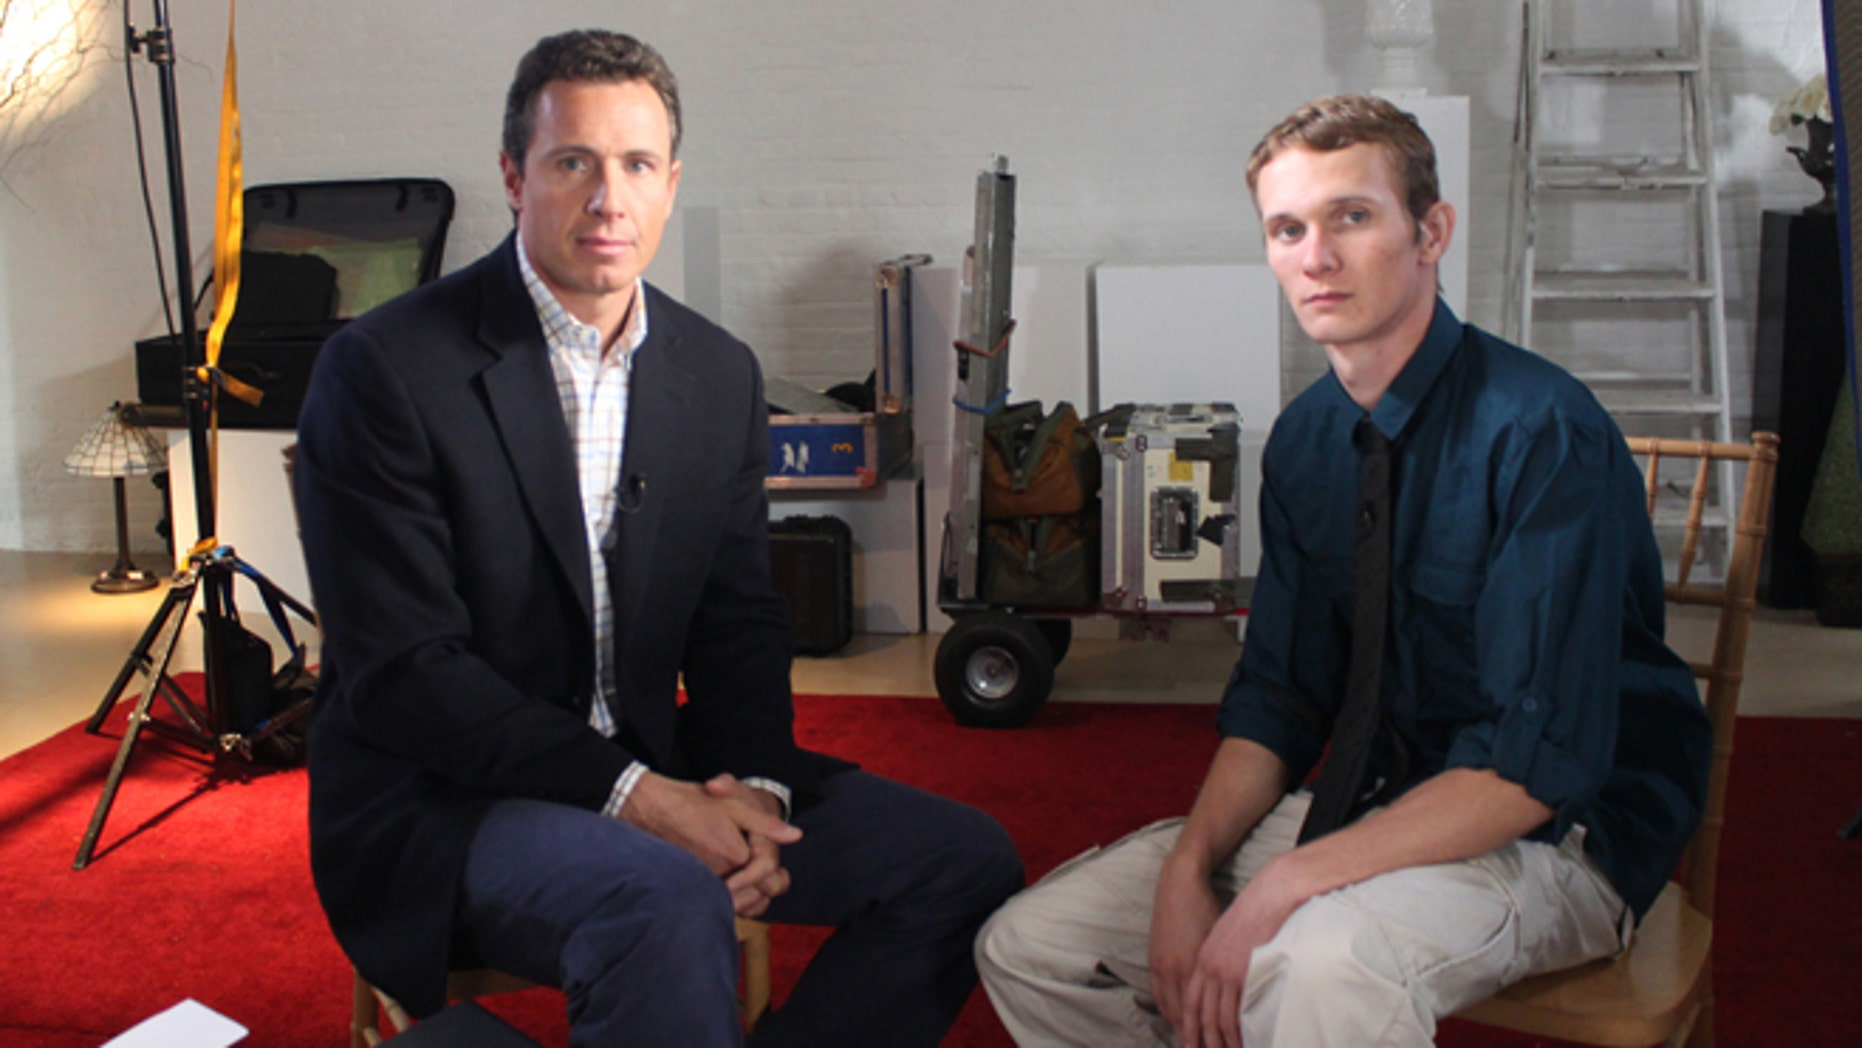 """This undated image released by ABC shows ABC News' Chris Cuomo, left, with Aaron Fisher, 18, a victim of former Penn State assistant football coach Jerry Sandusky during an interview airing Friday, Oct. 19, 2012 on the news magazine show """"20/20,"""" at 10 p.m. EST on ABC."""